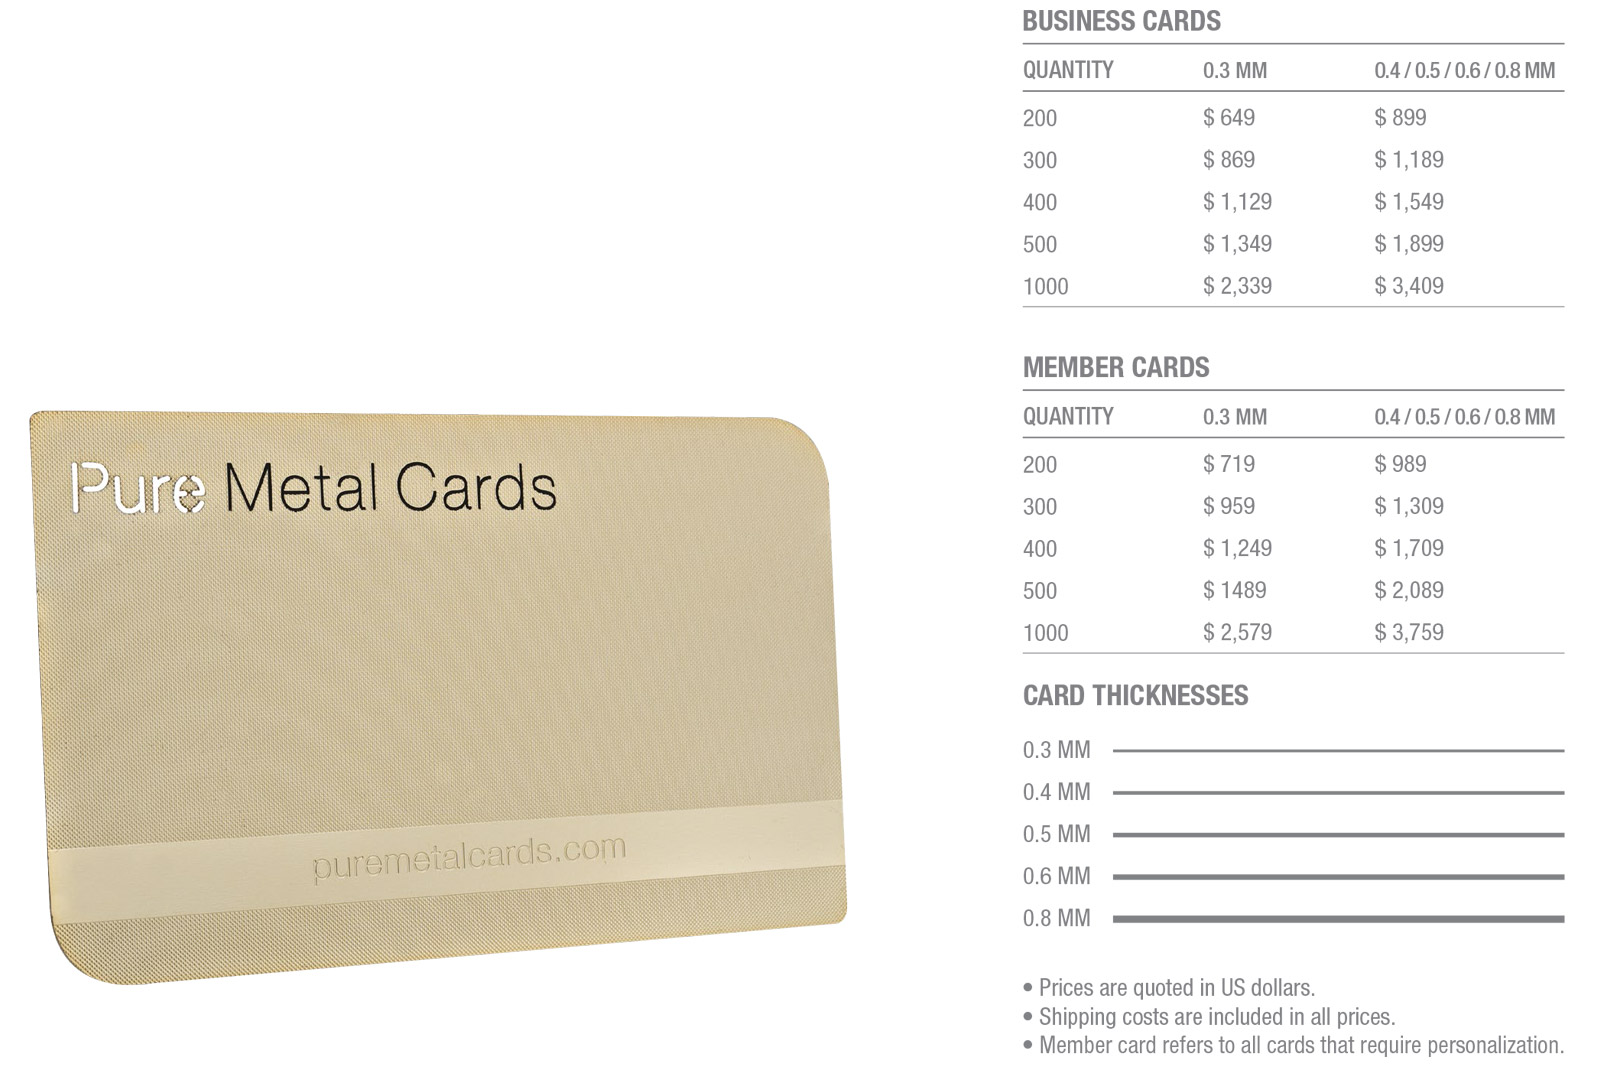 Brass-(Gold)-Prism-Cards-Pricing-Table